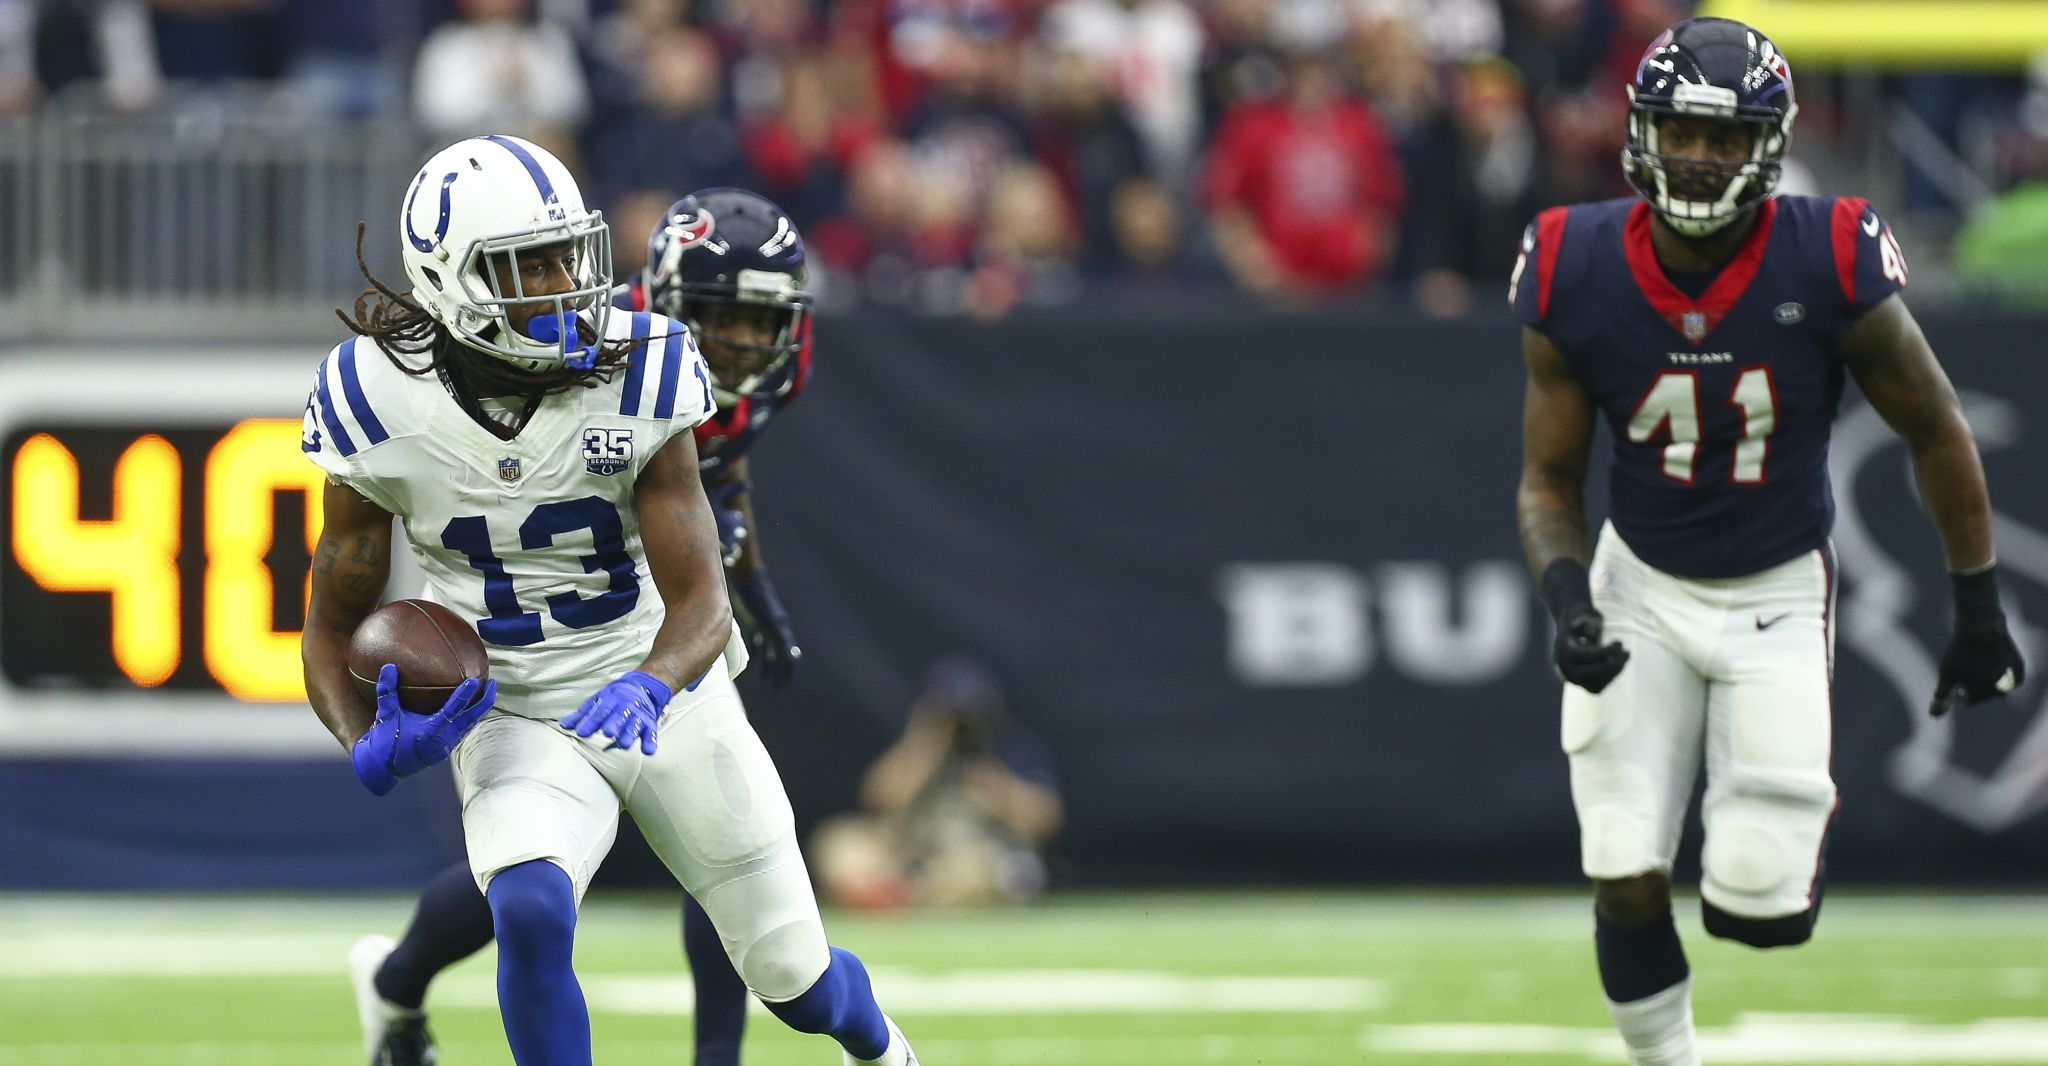 Colts' T.Y. Hilton continues to torch Texans